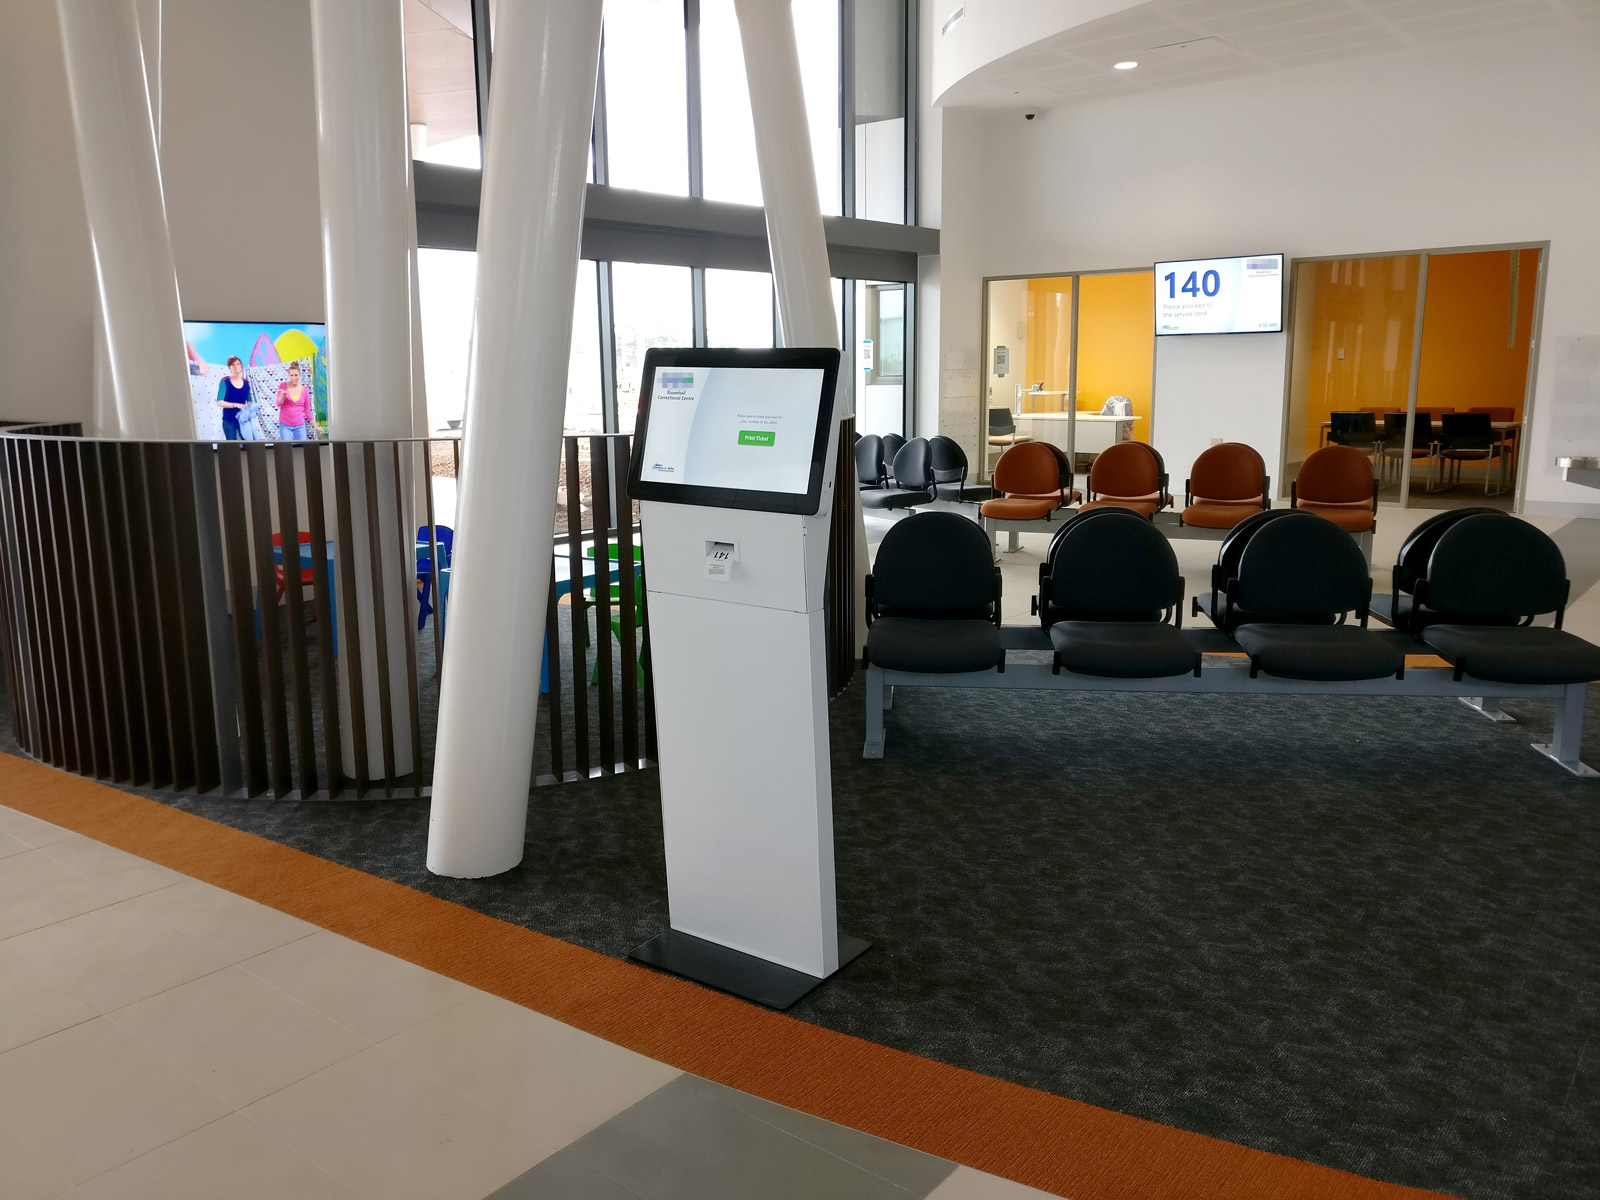 The visitor kiosk was deliberately left unbranded to better blend into the décor. Visitors collect their ticket and are directed to the waiting area. Photo courtesy Pro AV Solutions